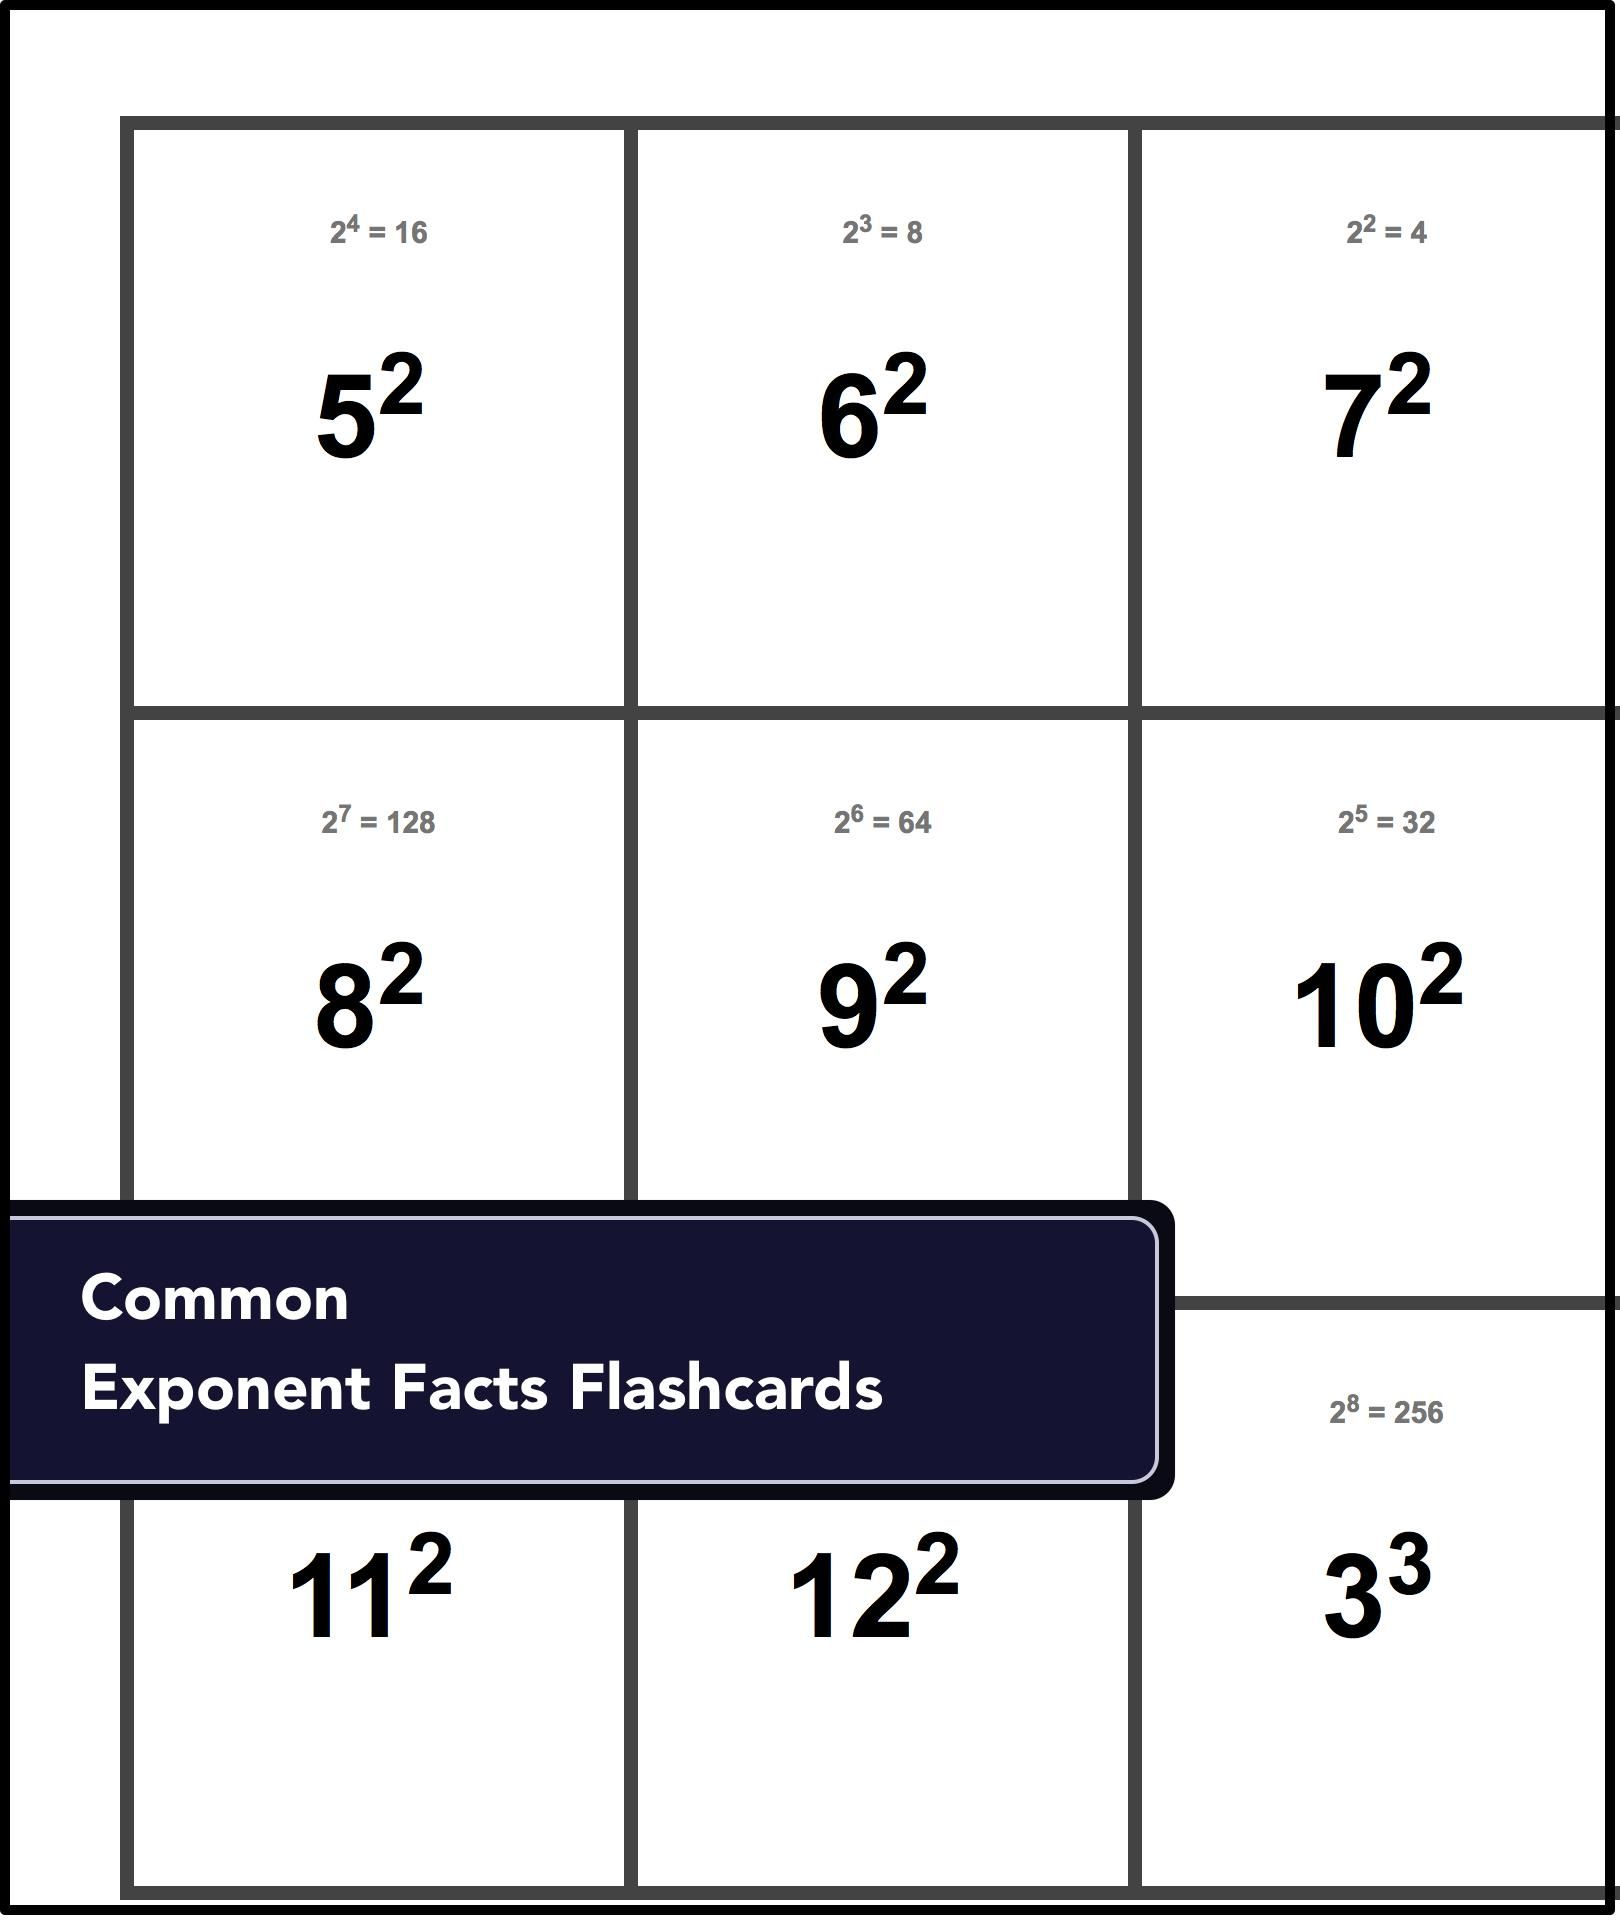 Flashcards For Common Exponent Facts